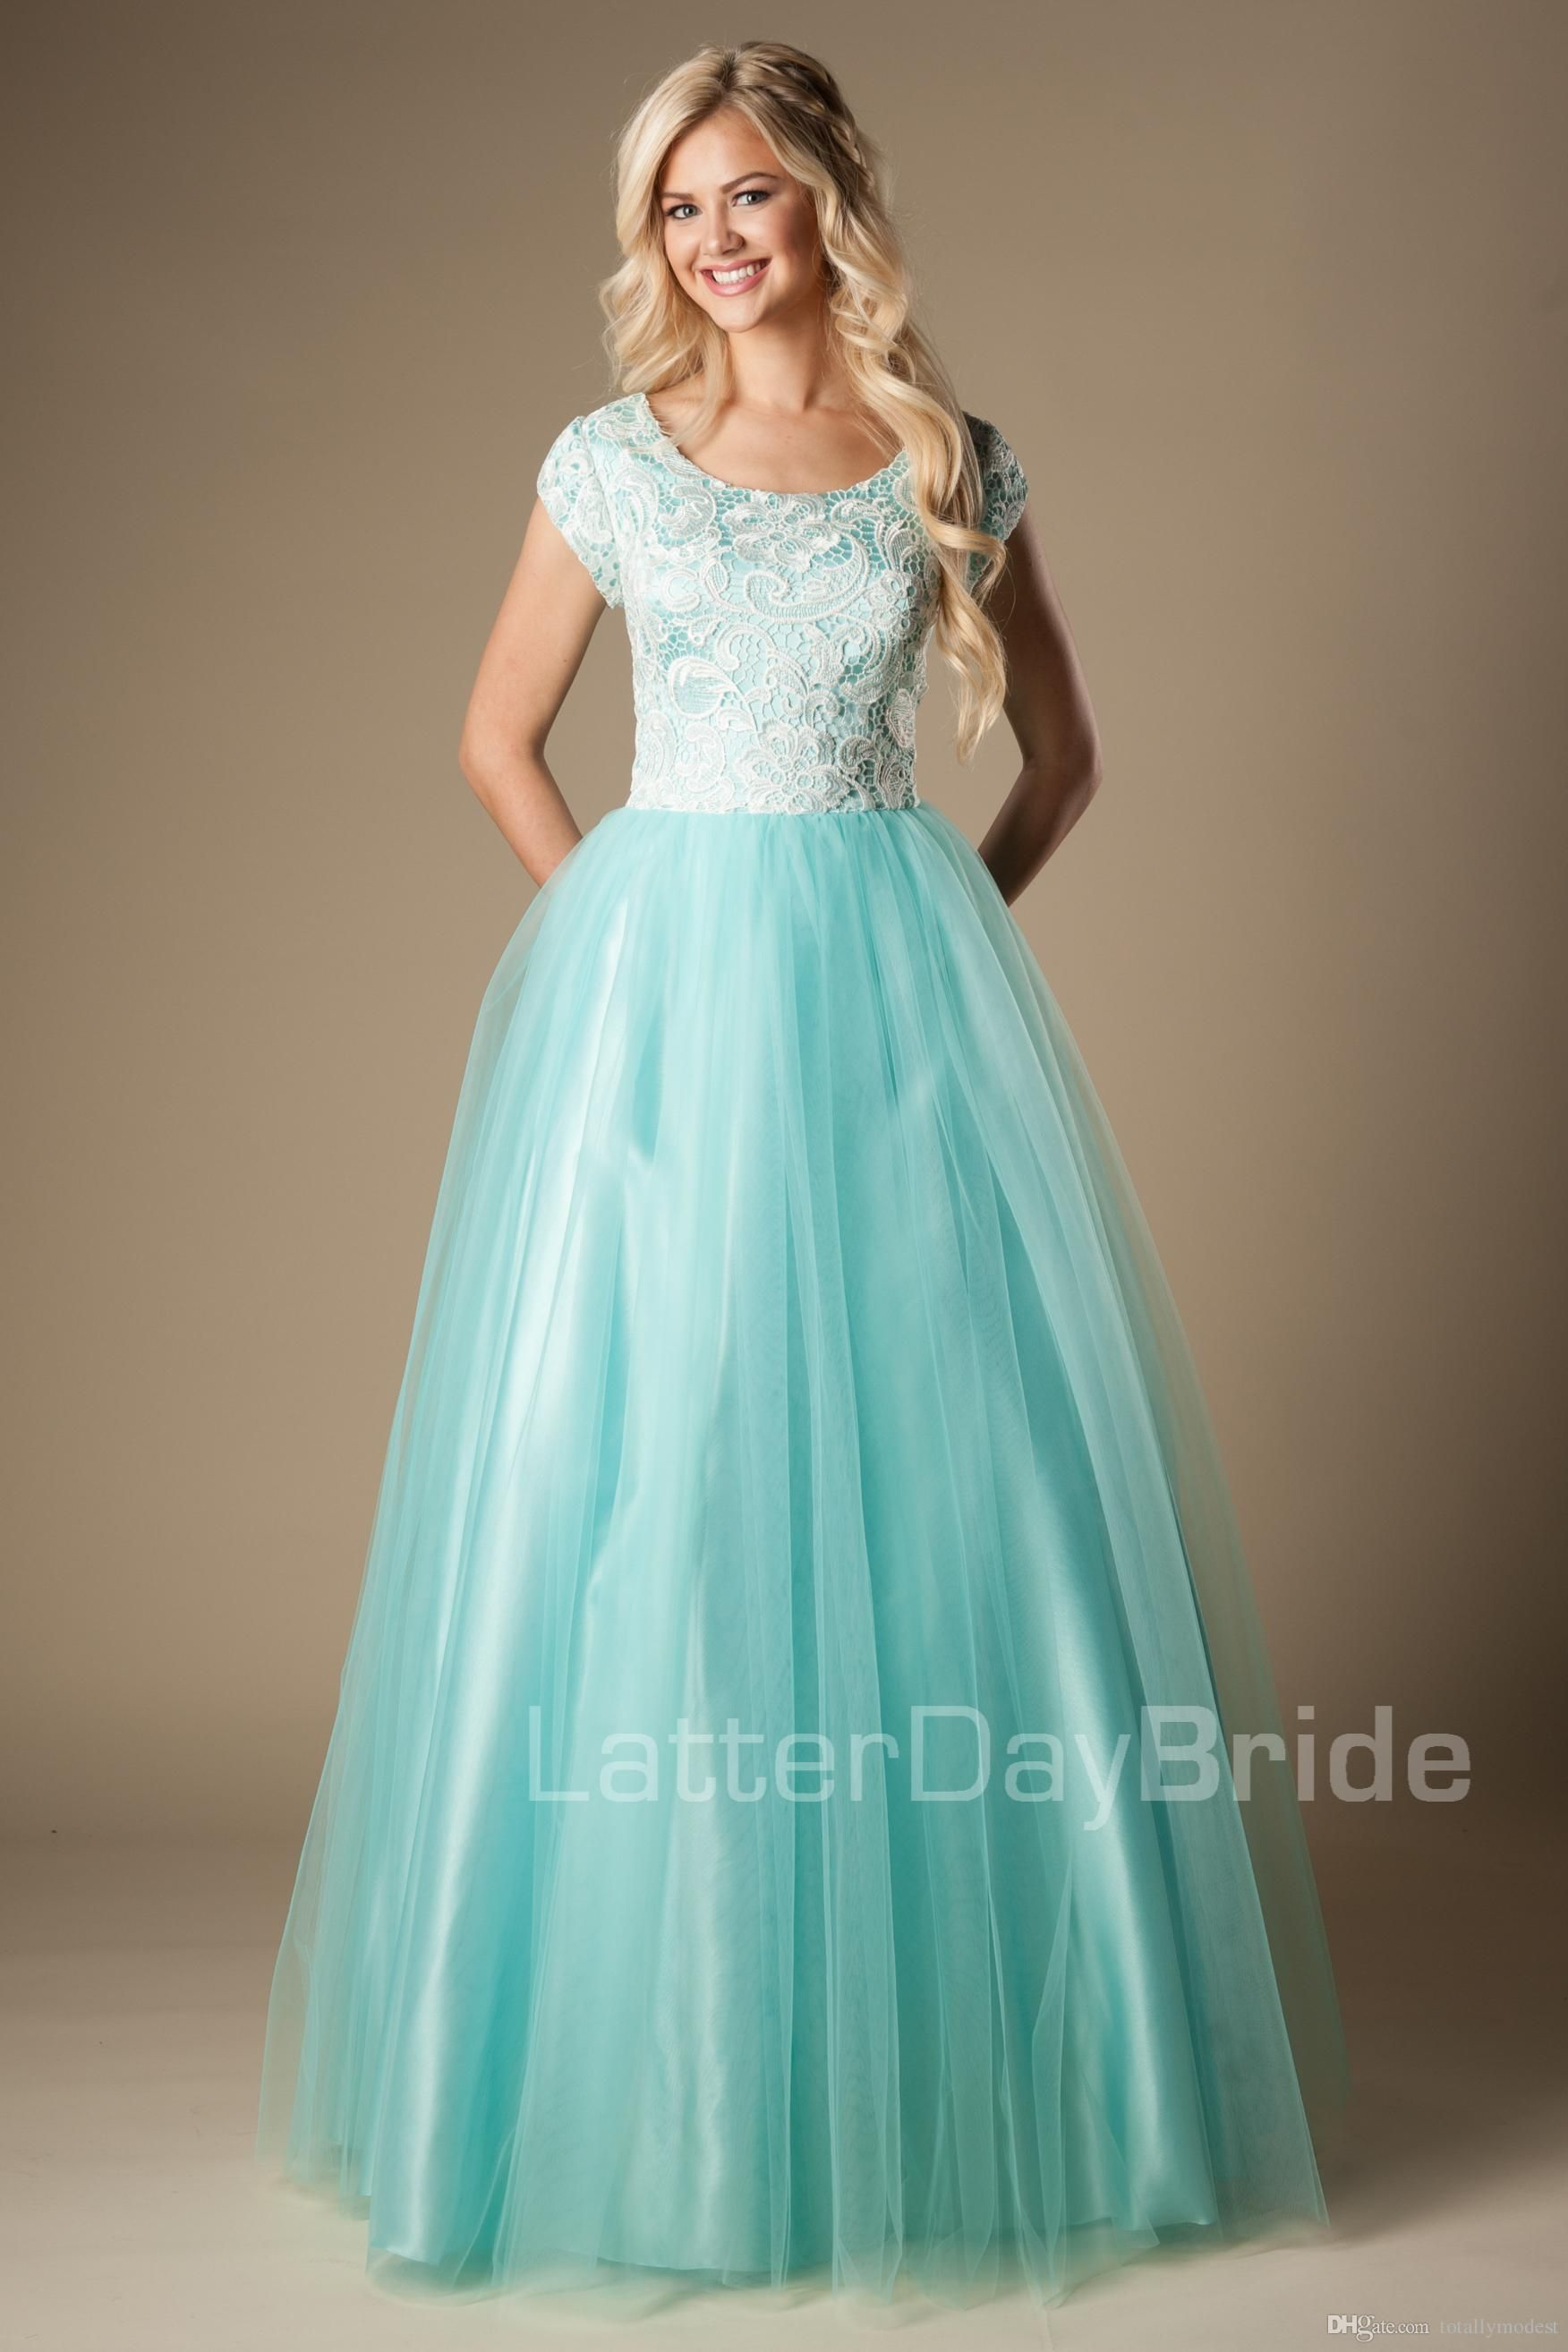 Mint Lace Tulle Modest Prom Dresses With Cap Sleeves 2016 A-line ...